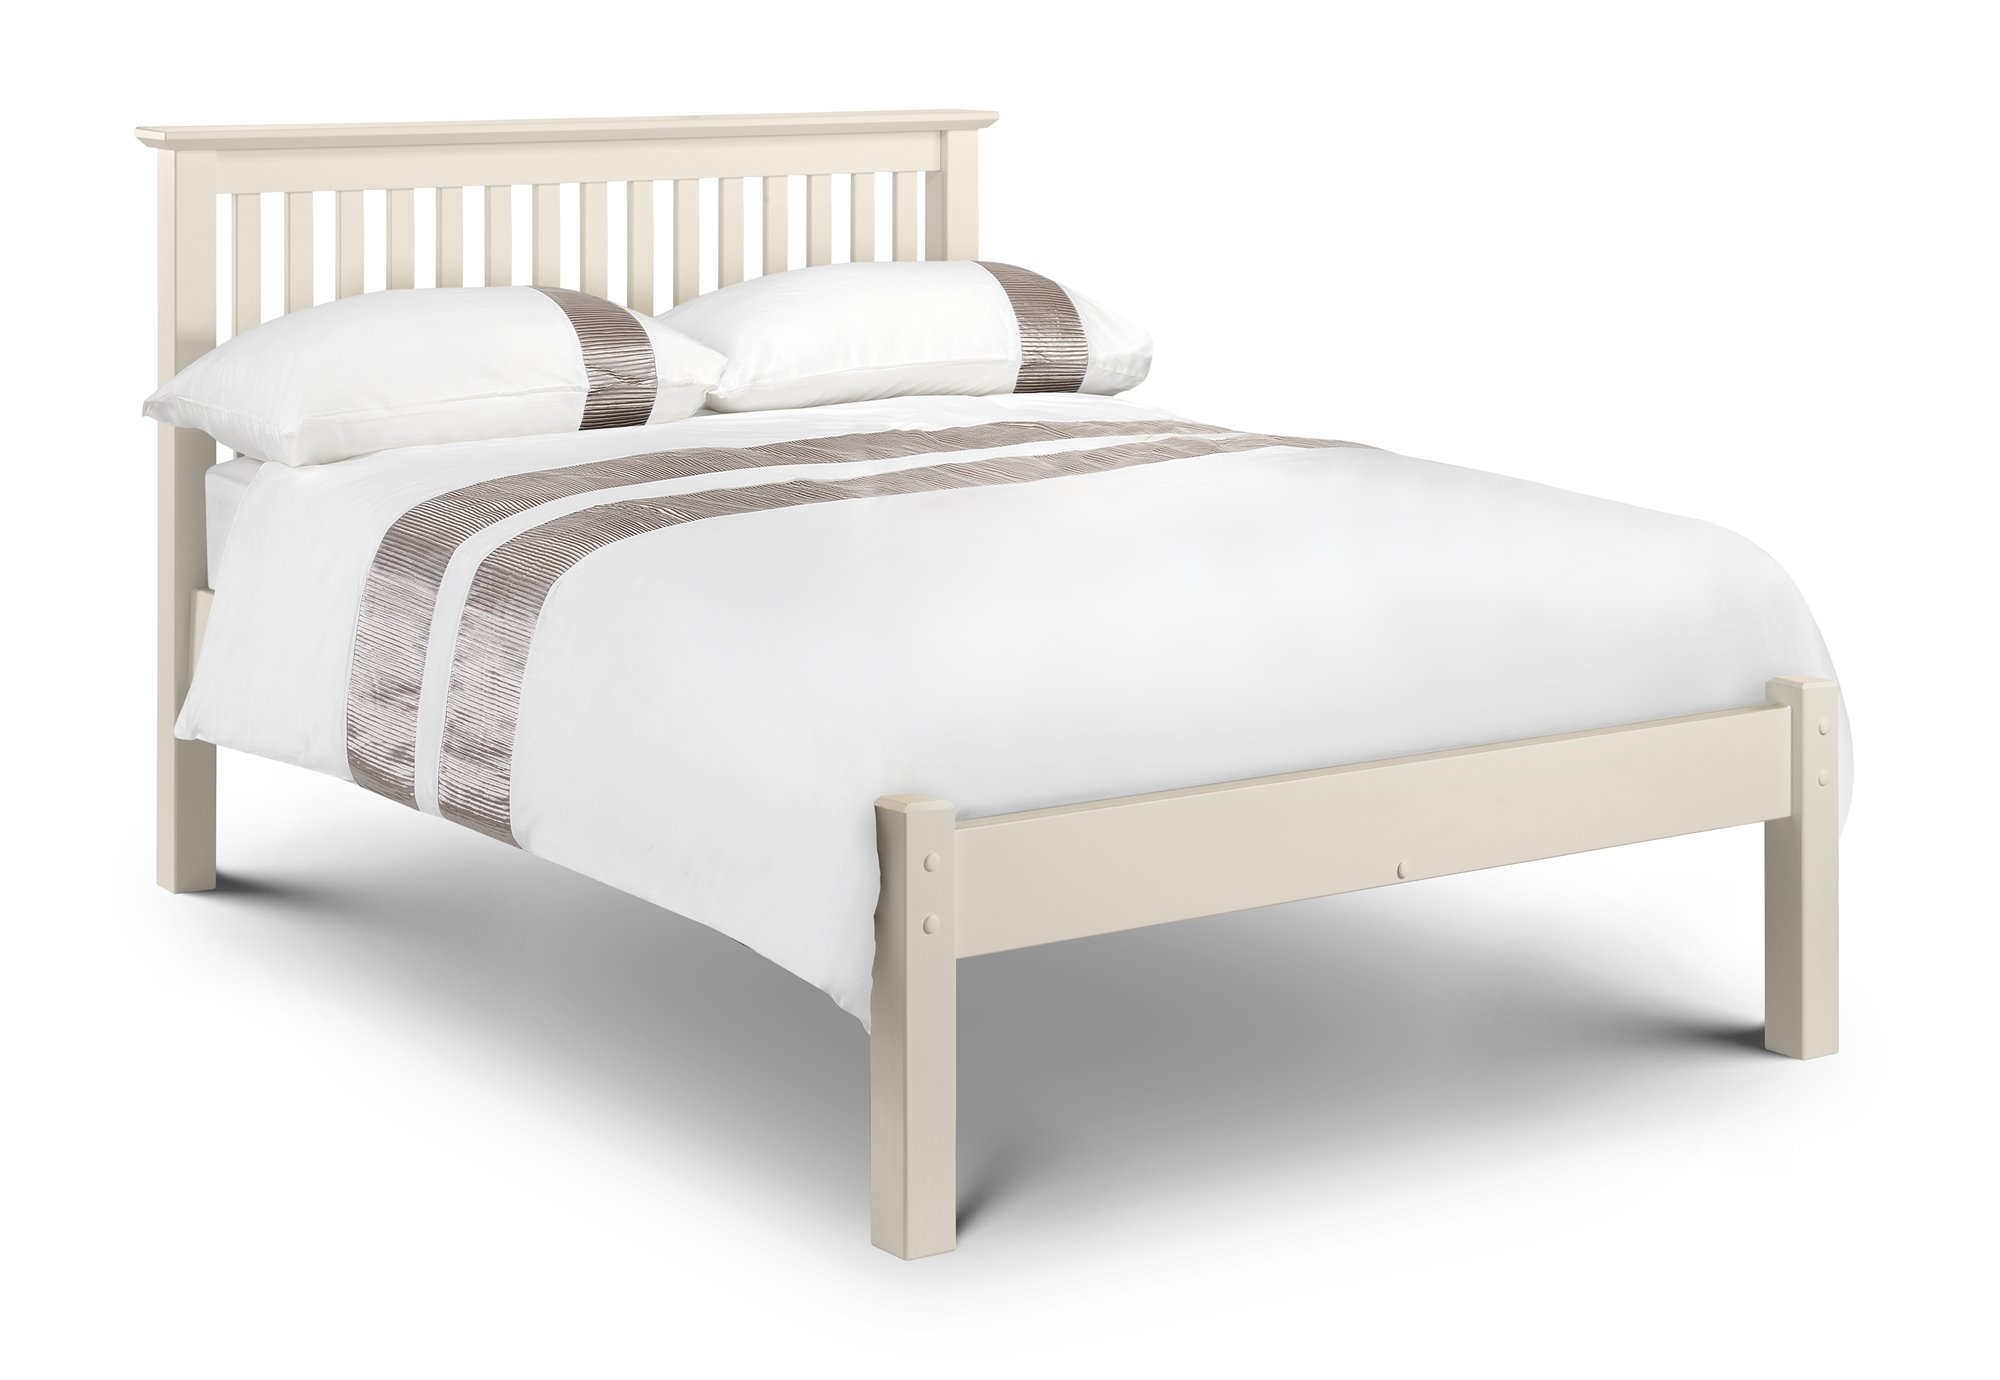 King Size Wooden Bed Frame Low Foot End